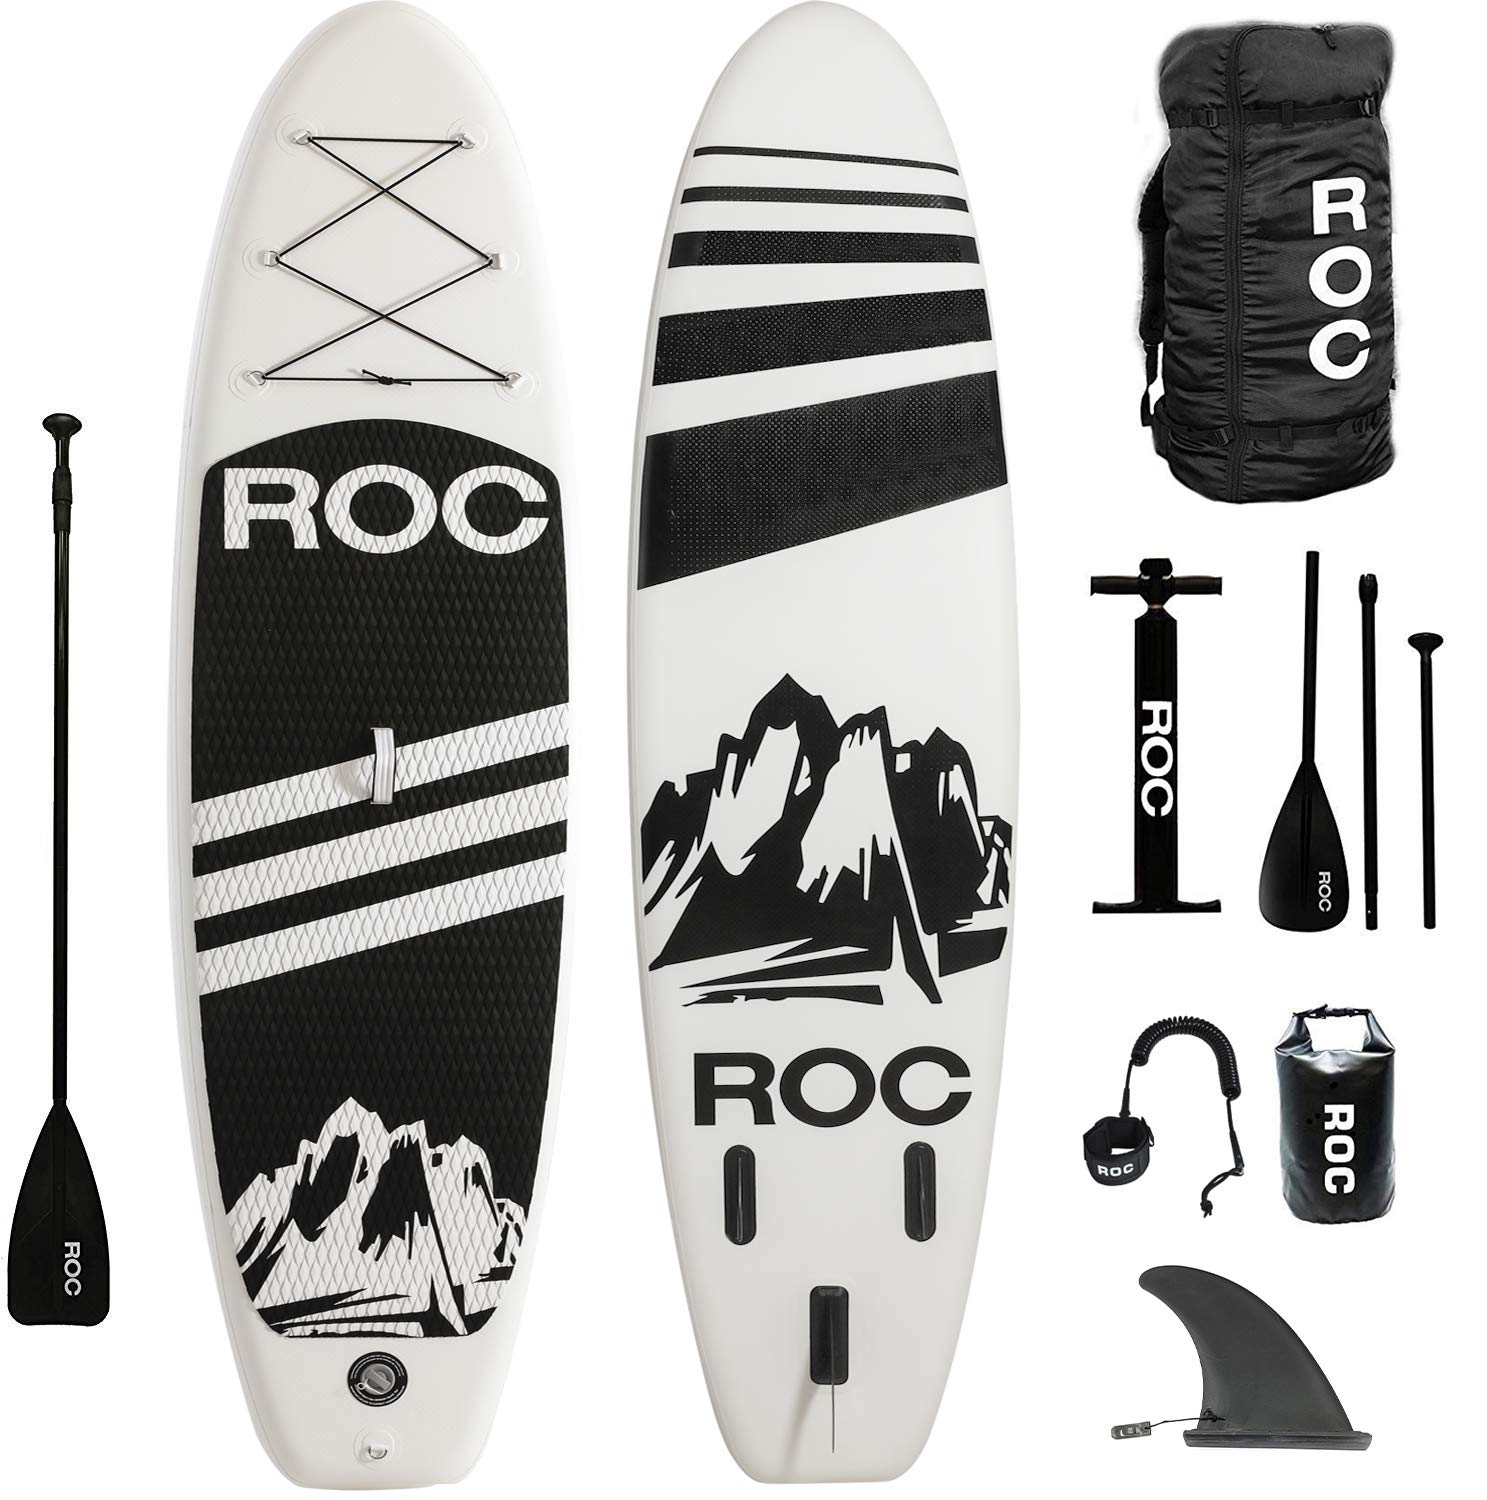 Roc Inflatable Stand Up Paddle Boards W Free Premium SUP Accessories & Backpack, Non-Slip Deck Bonus Waterproof Bag, Leash, Paddle and Hand Pump Youth ...